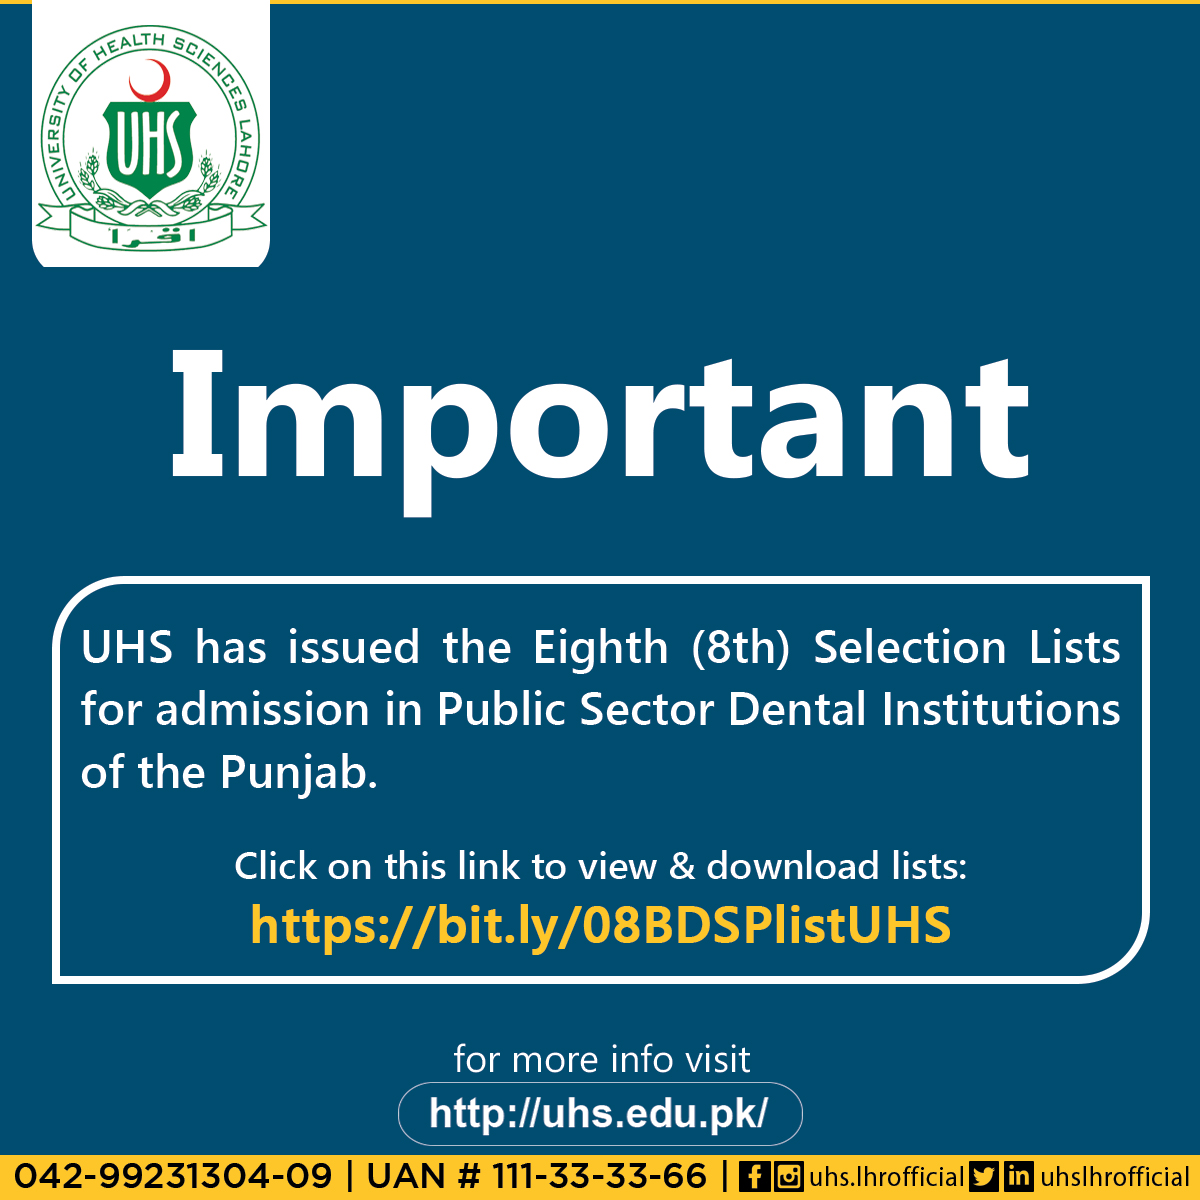 UHS has issued the Eighth (8th) Selection Lists for admission in Public Sector Dental Institutions of the Punjab. Click on this link to view & download lists: bit.ly/08BDSPlistUHS